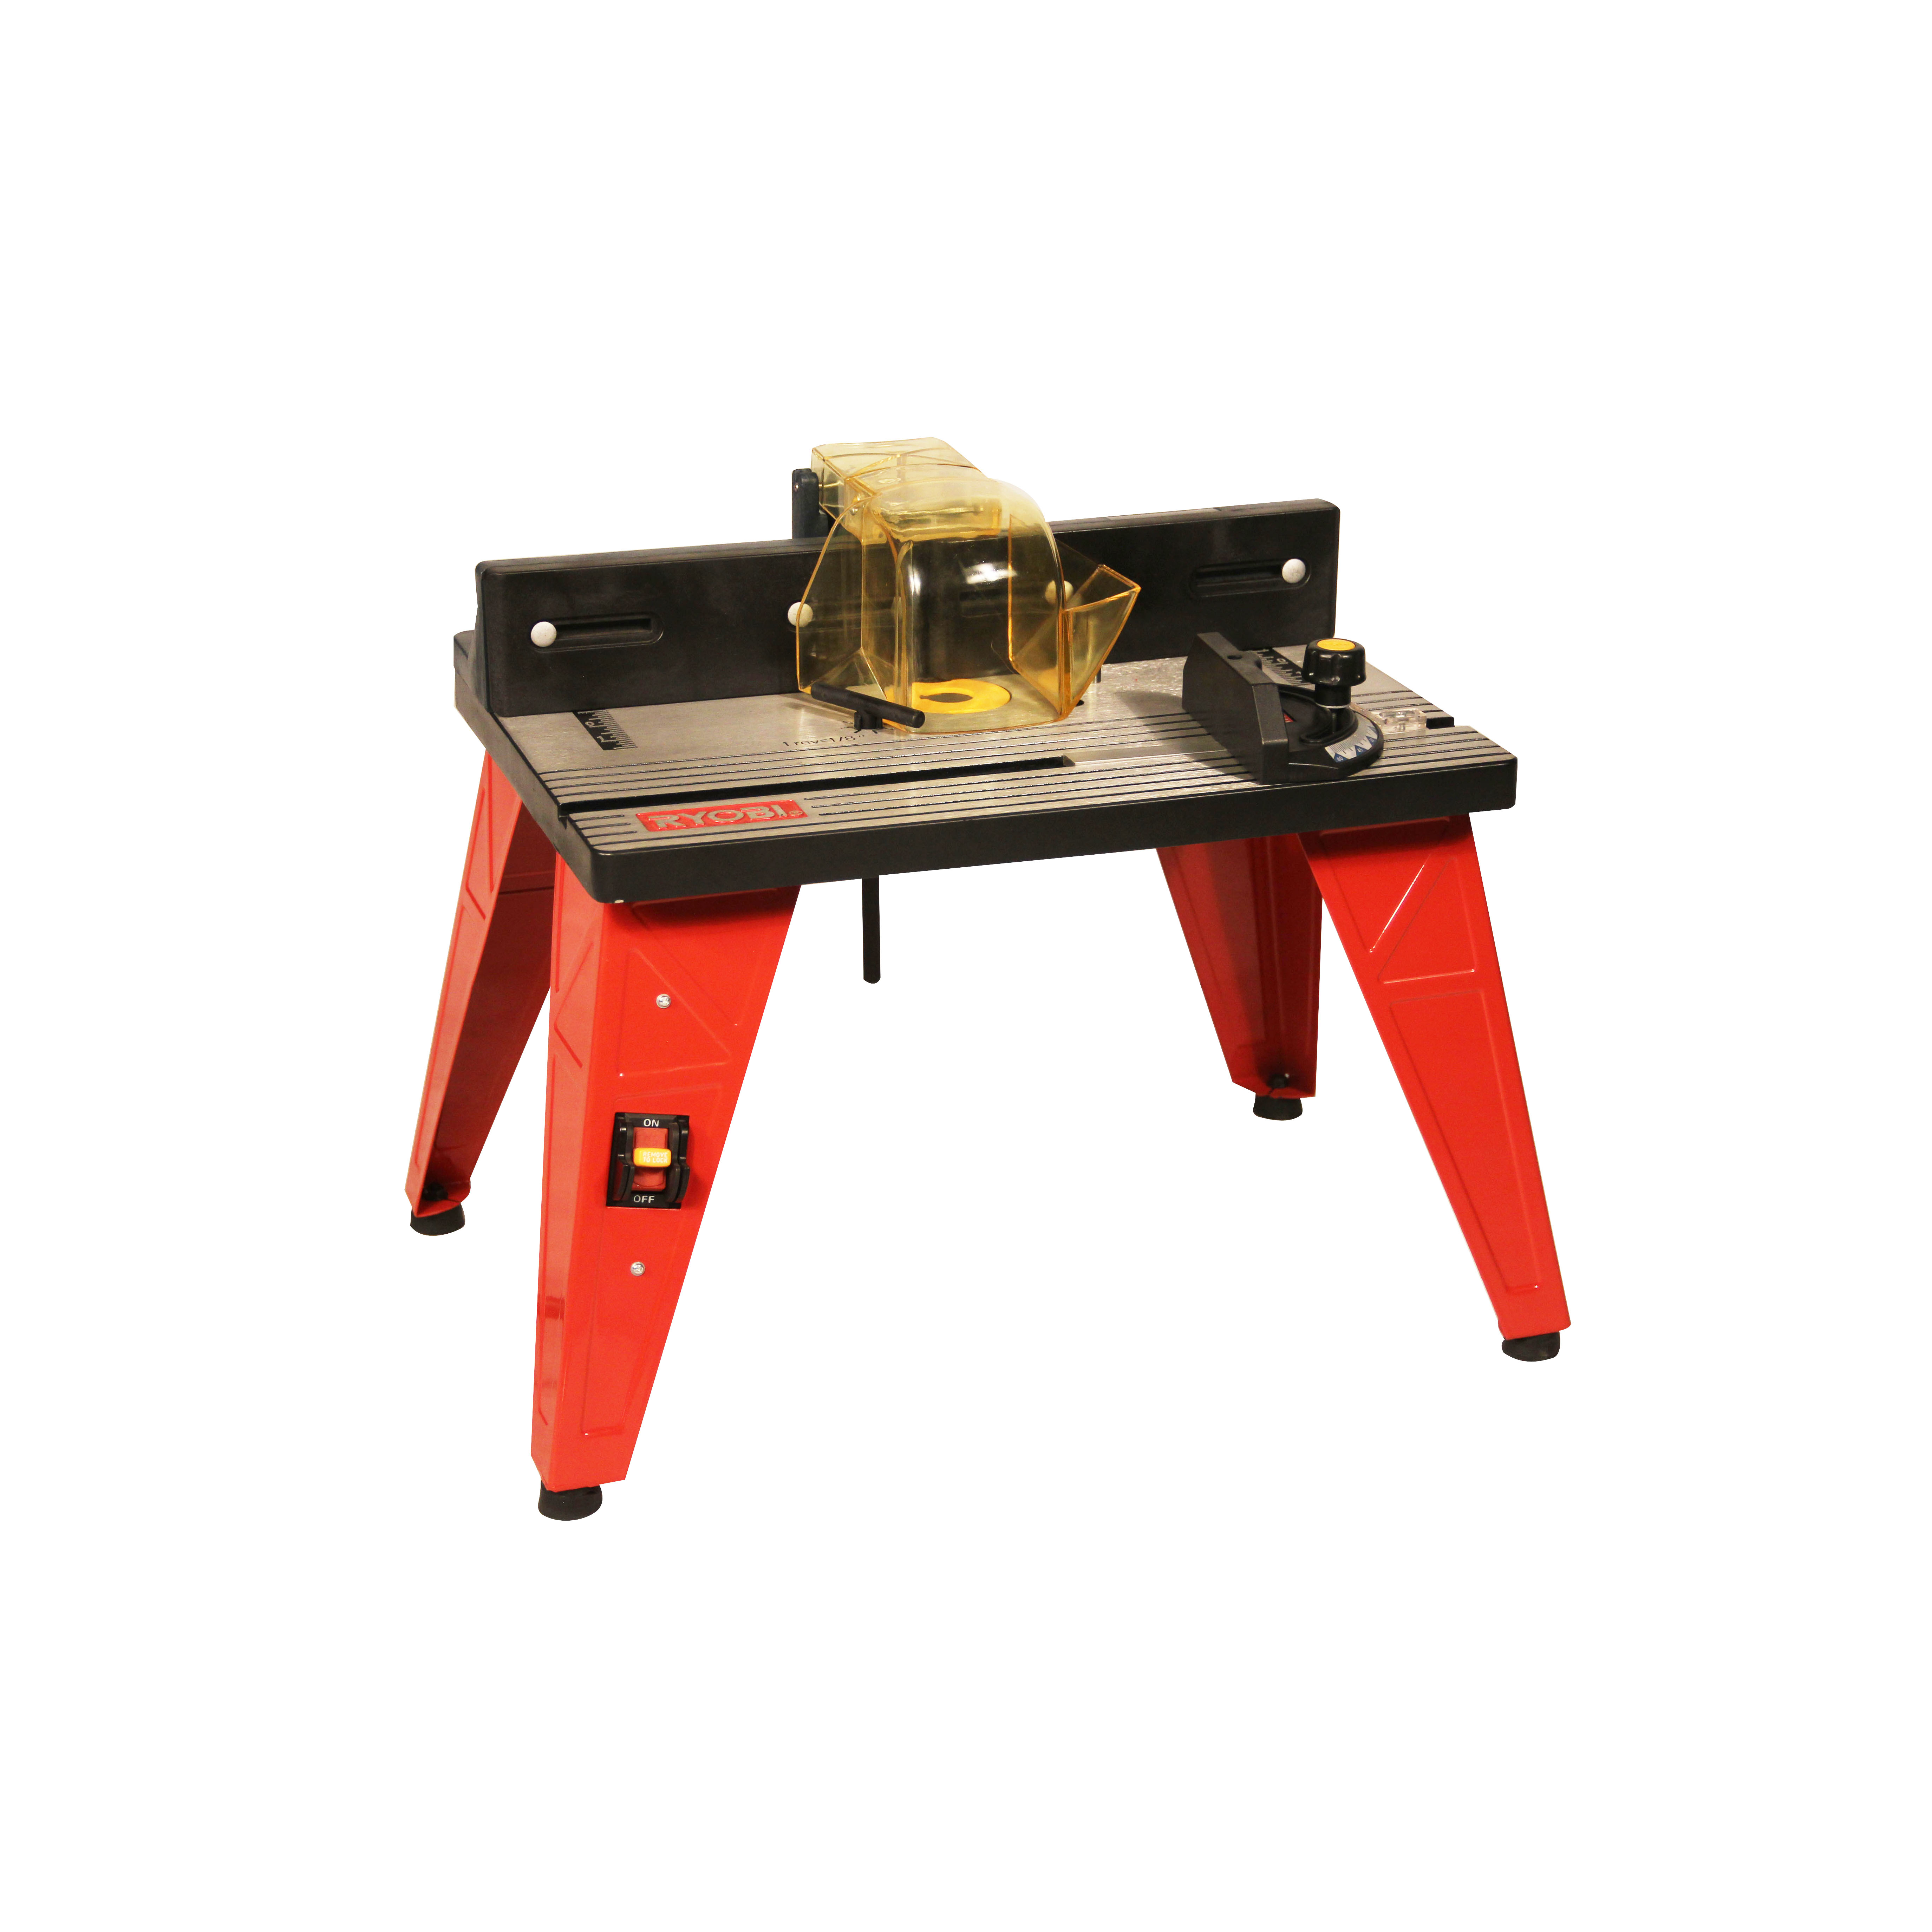 Rt150 3 Portable Hot Sale Electric Woodworking Router Table Buy Router Table Electric Router Table Woodworking Router Table Product On Alibaba Com